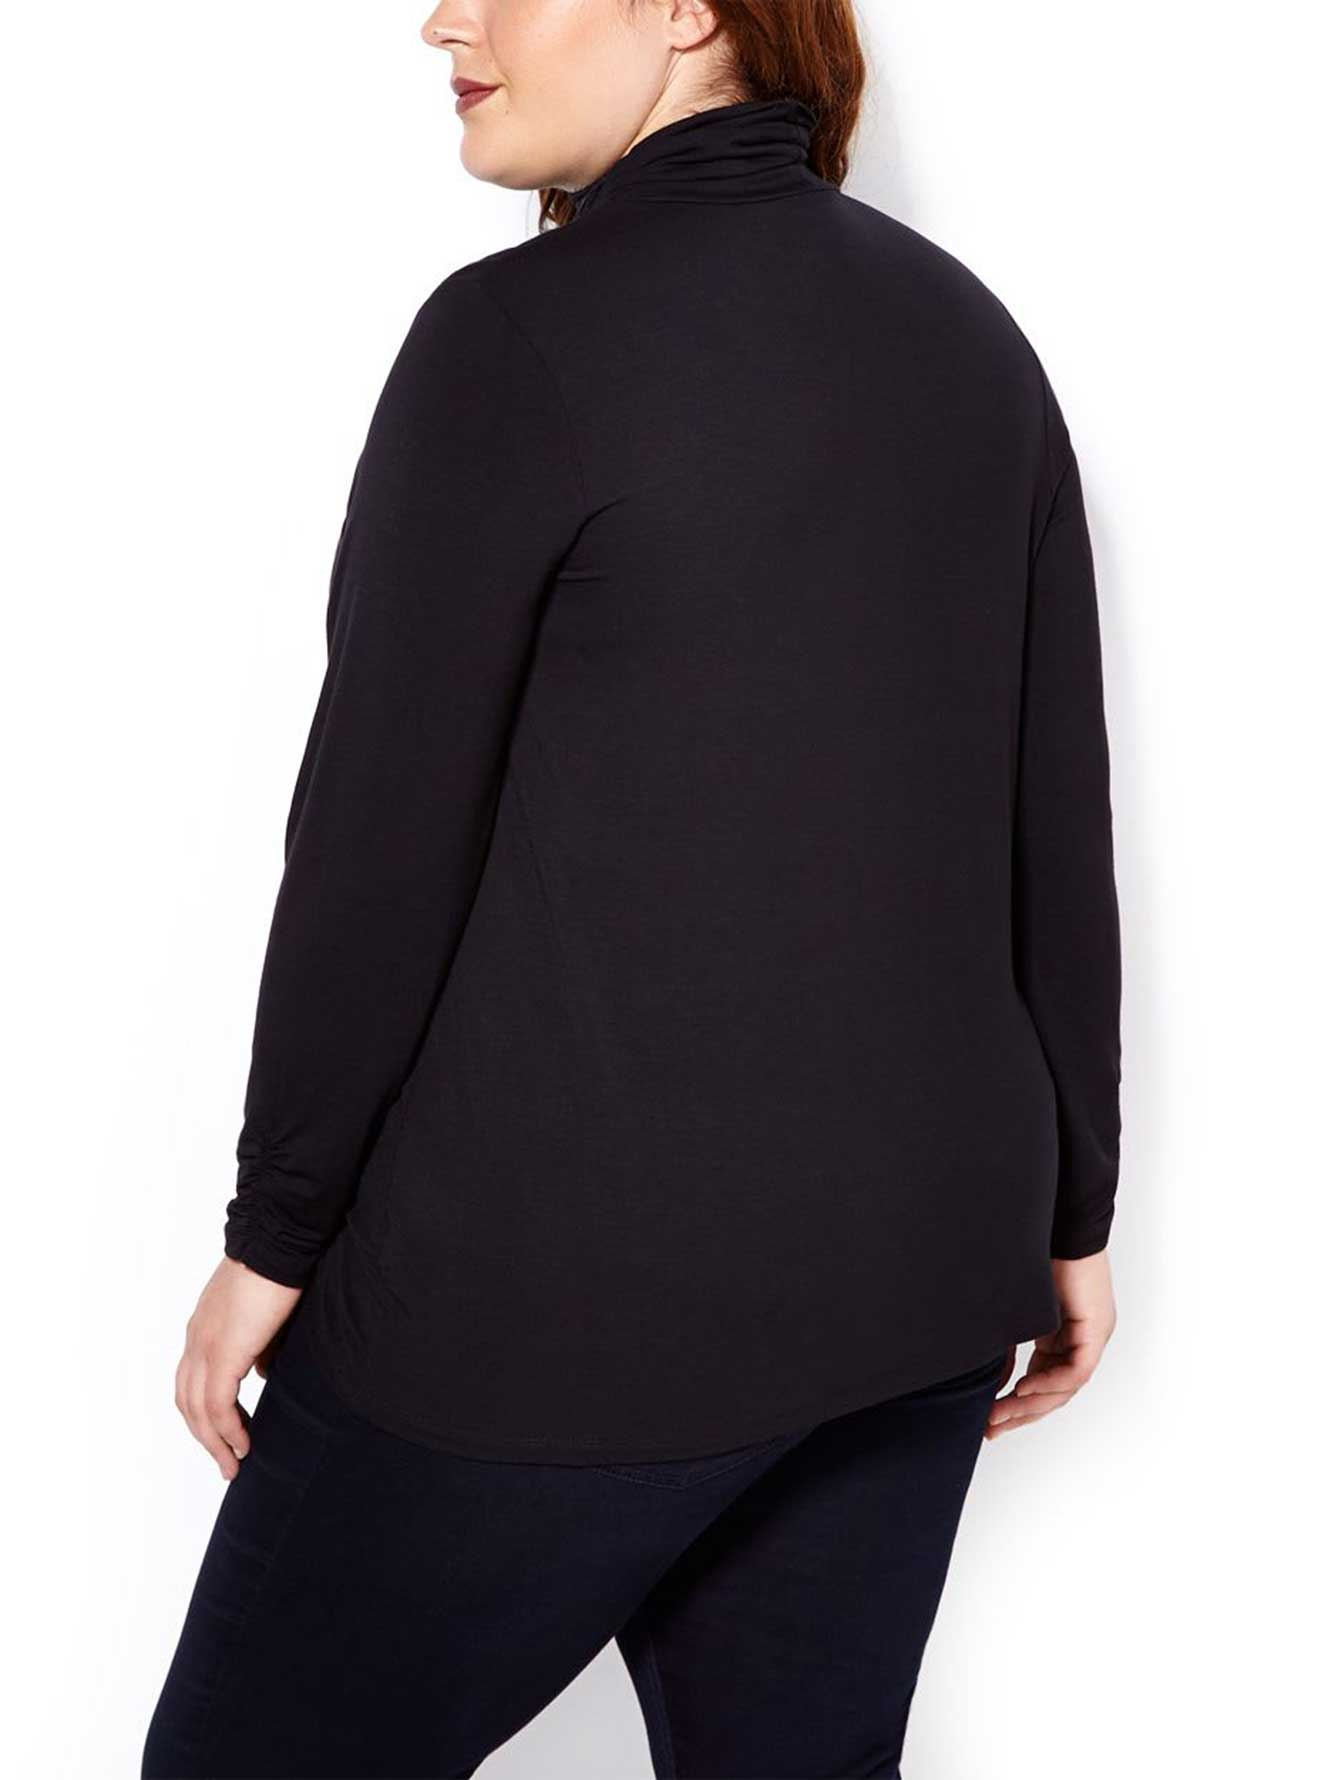 Relaxed Fit Long Sleeve Turtleneck